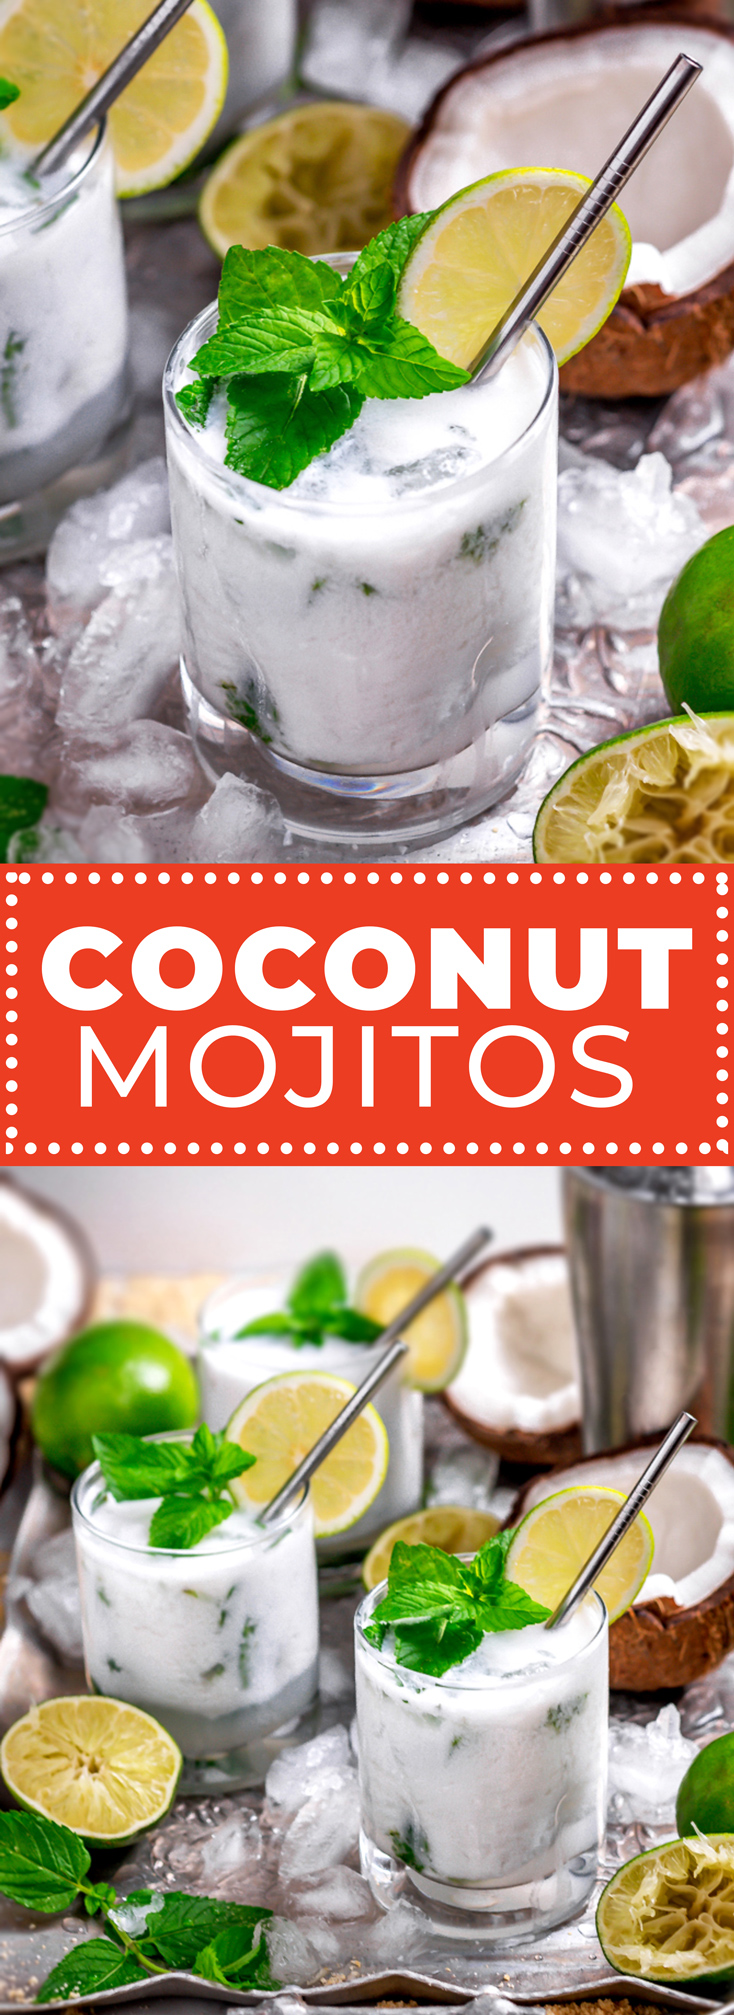 Boat deck or roof deck, there's no better way to sip this summer than enjoying a few Coconut Mojitos. A refreshing mix of rum, lime, and mint mingle with creamy coconut for a cocktail that turns any party into a vacation.   hostthetoast.com